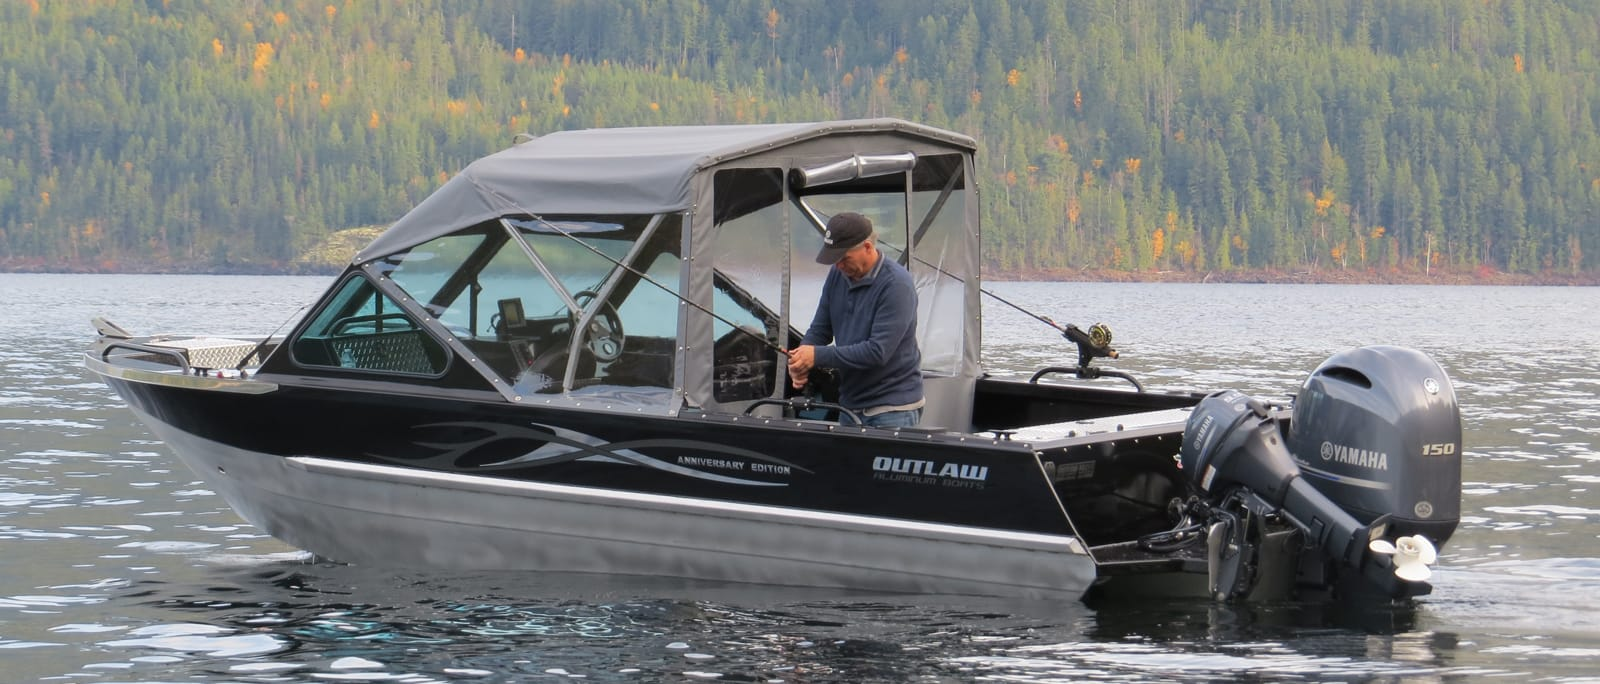 A man driving an outlaw eagle aluminum boat on the water